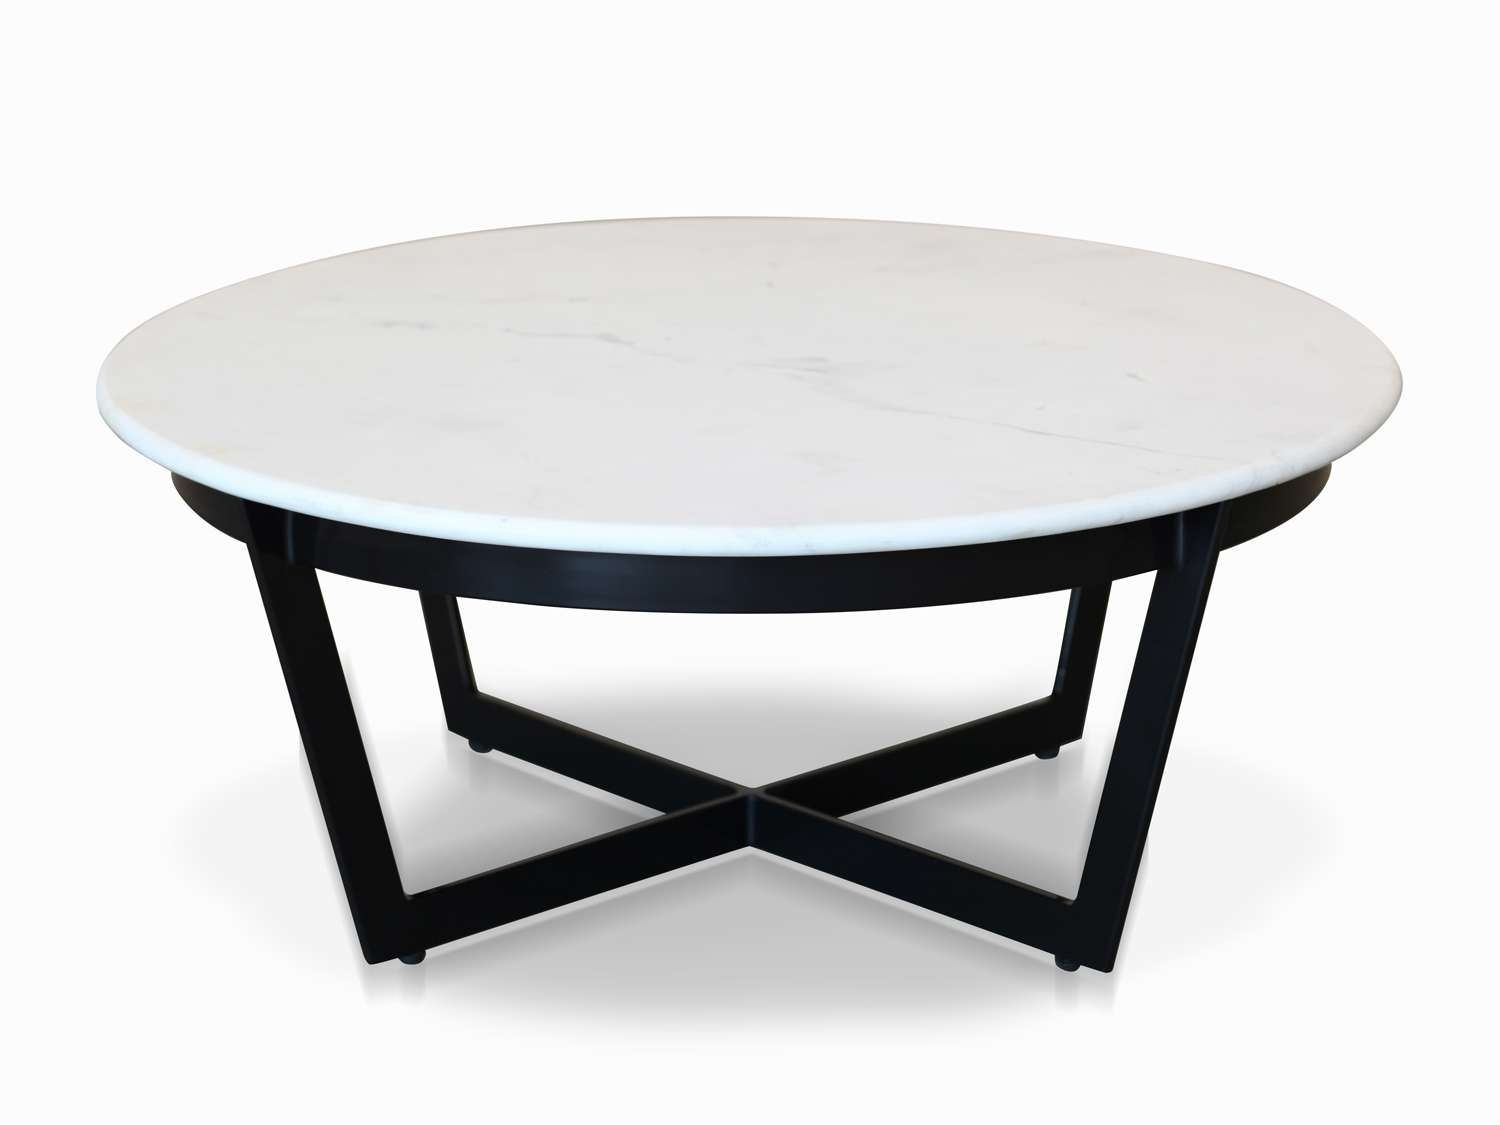 Best And Newest Marble Round Coffee Tables For Round Marble Coffee Table (View 2 of 20)